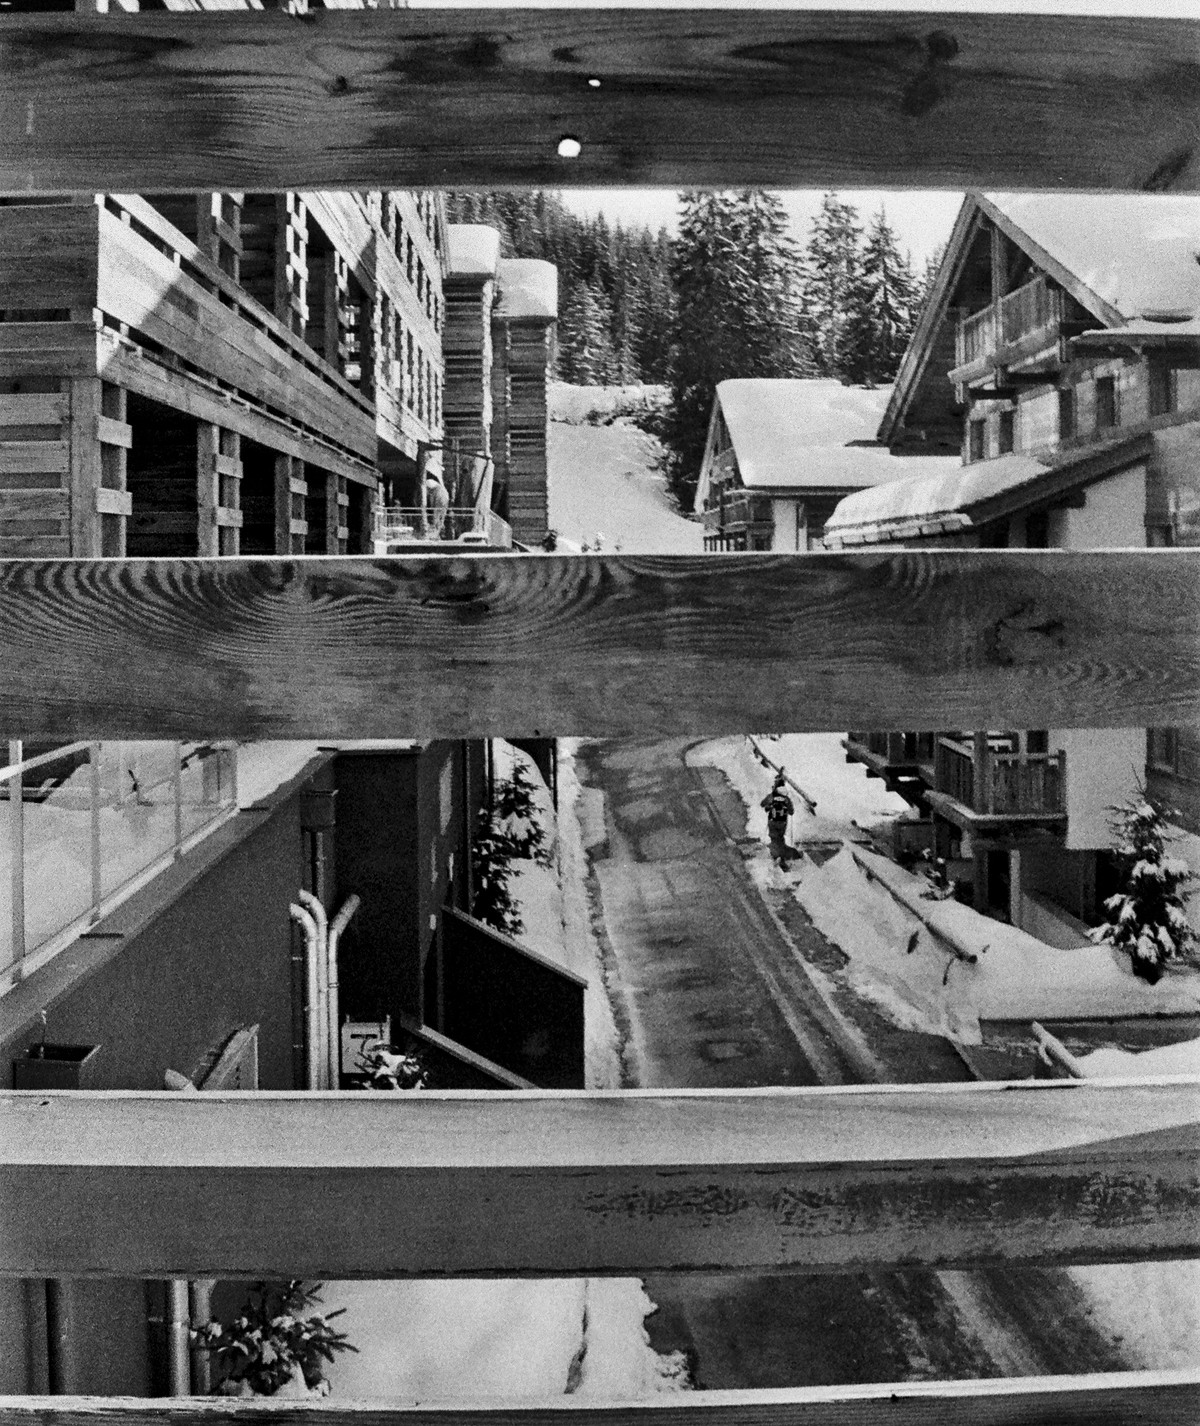 Through The Slats, Verbier by Prarthana Modi, Image Photography, Digital Print on Archival Paper, Gray color